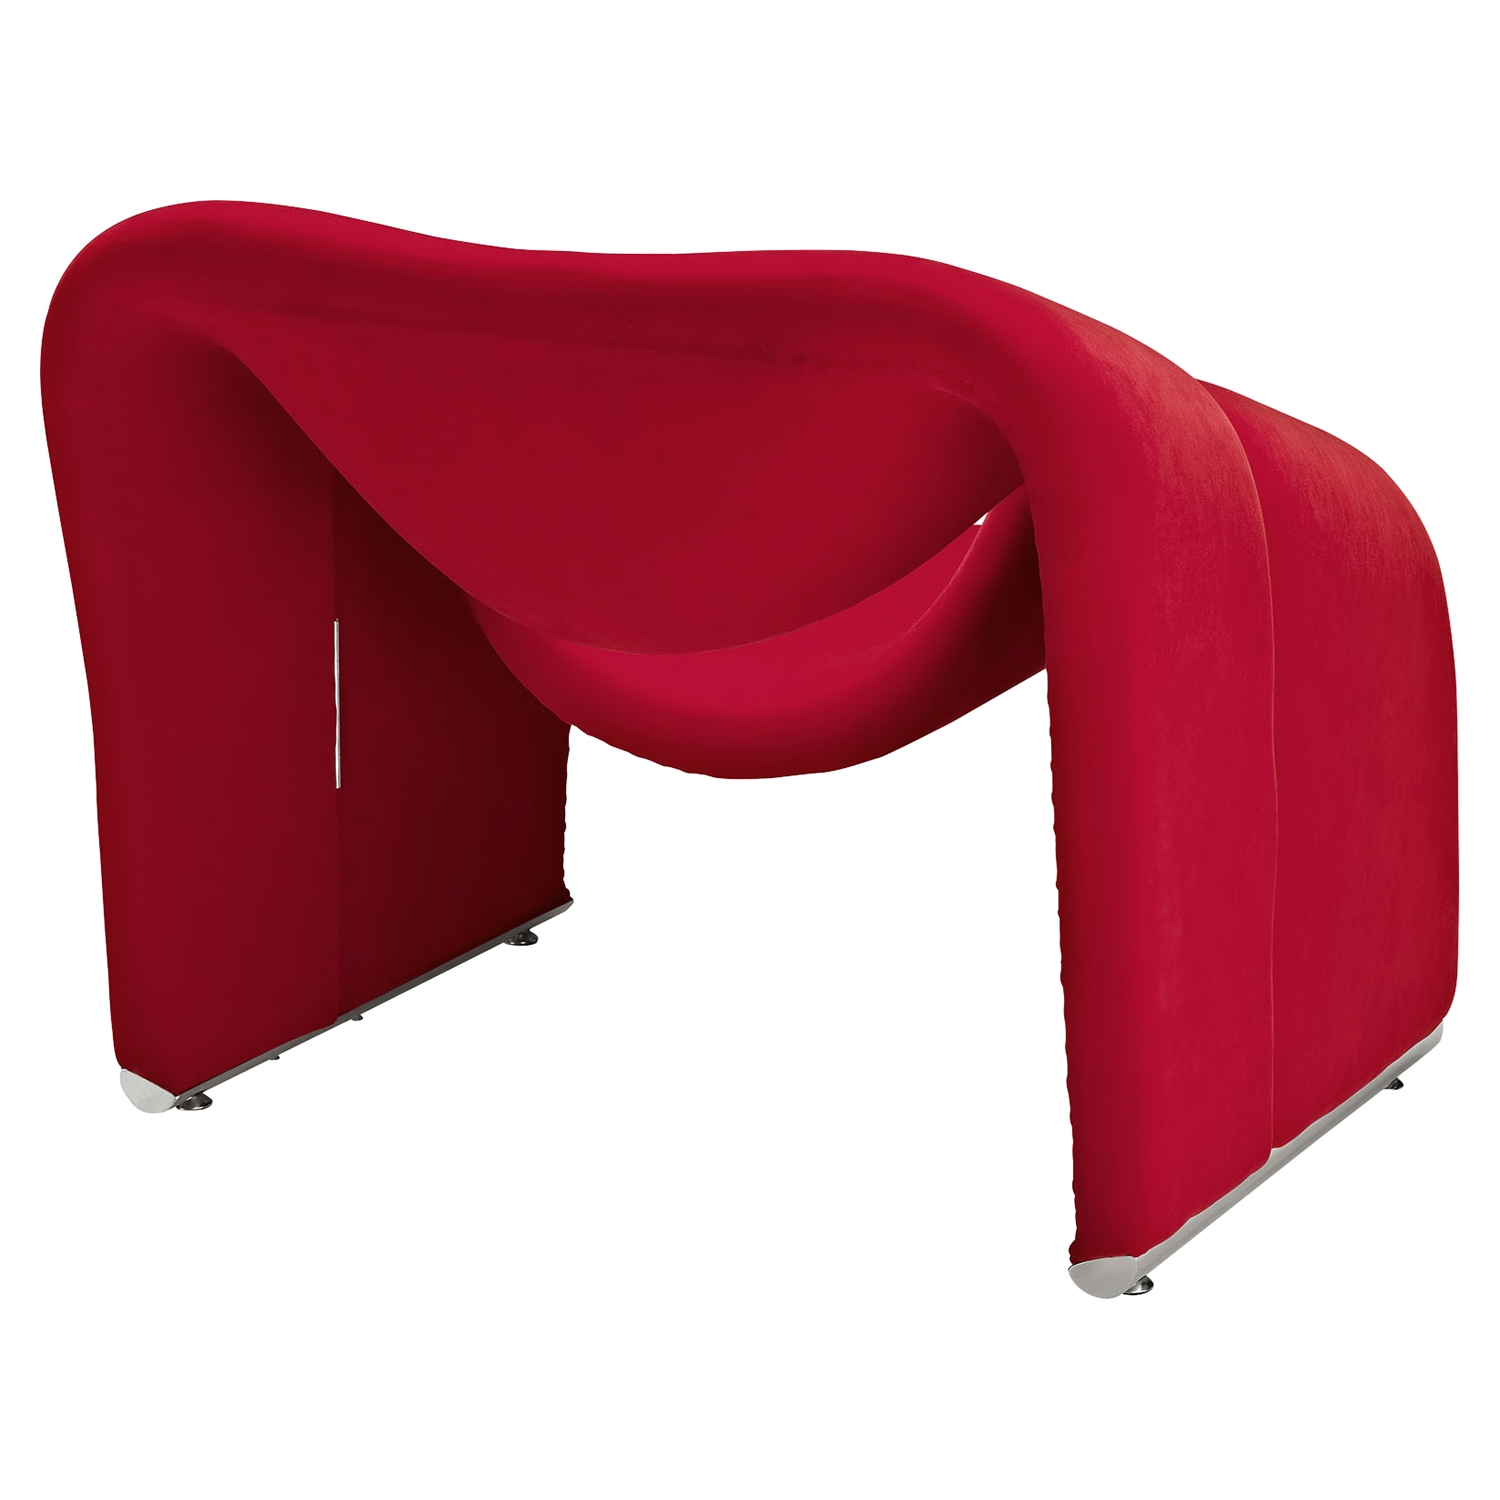 Cusp Upholstery Lounge Chair - Red - EEI-1052-RED